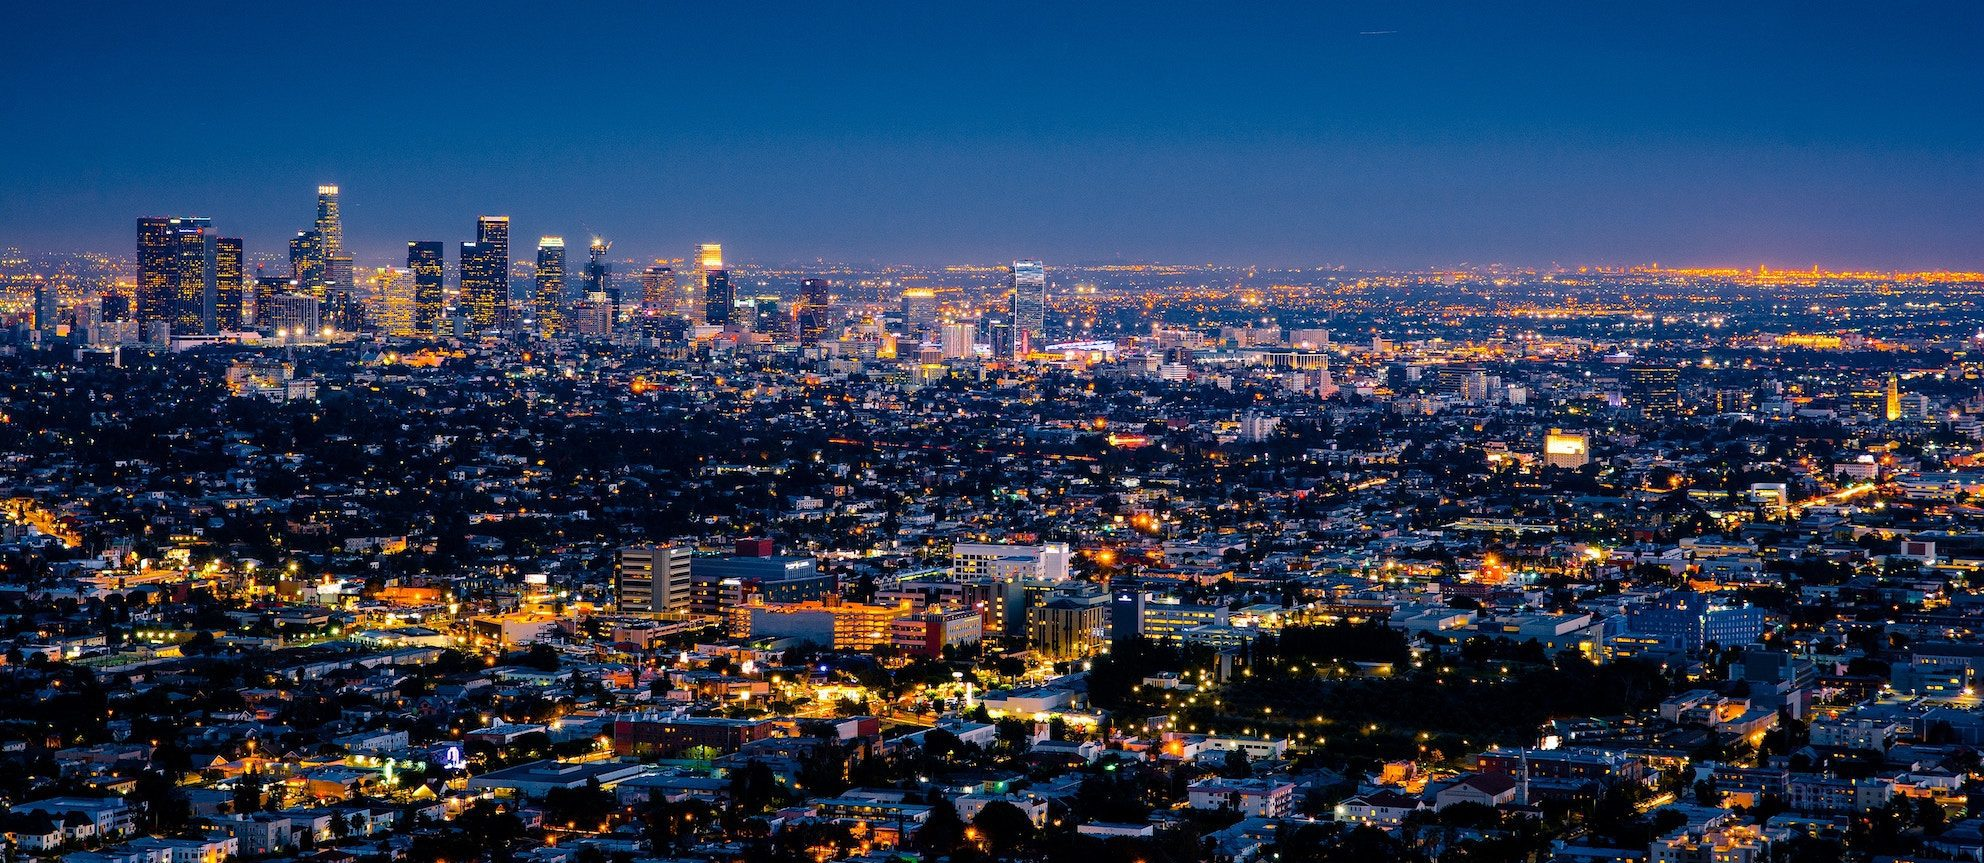 A new iBuyer launches in Los Angeles, targeting multifamily properties